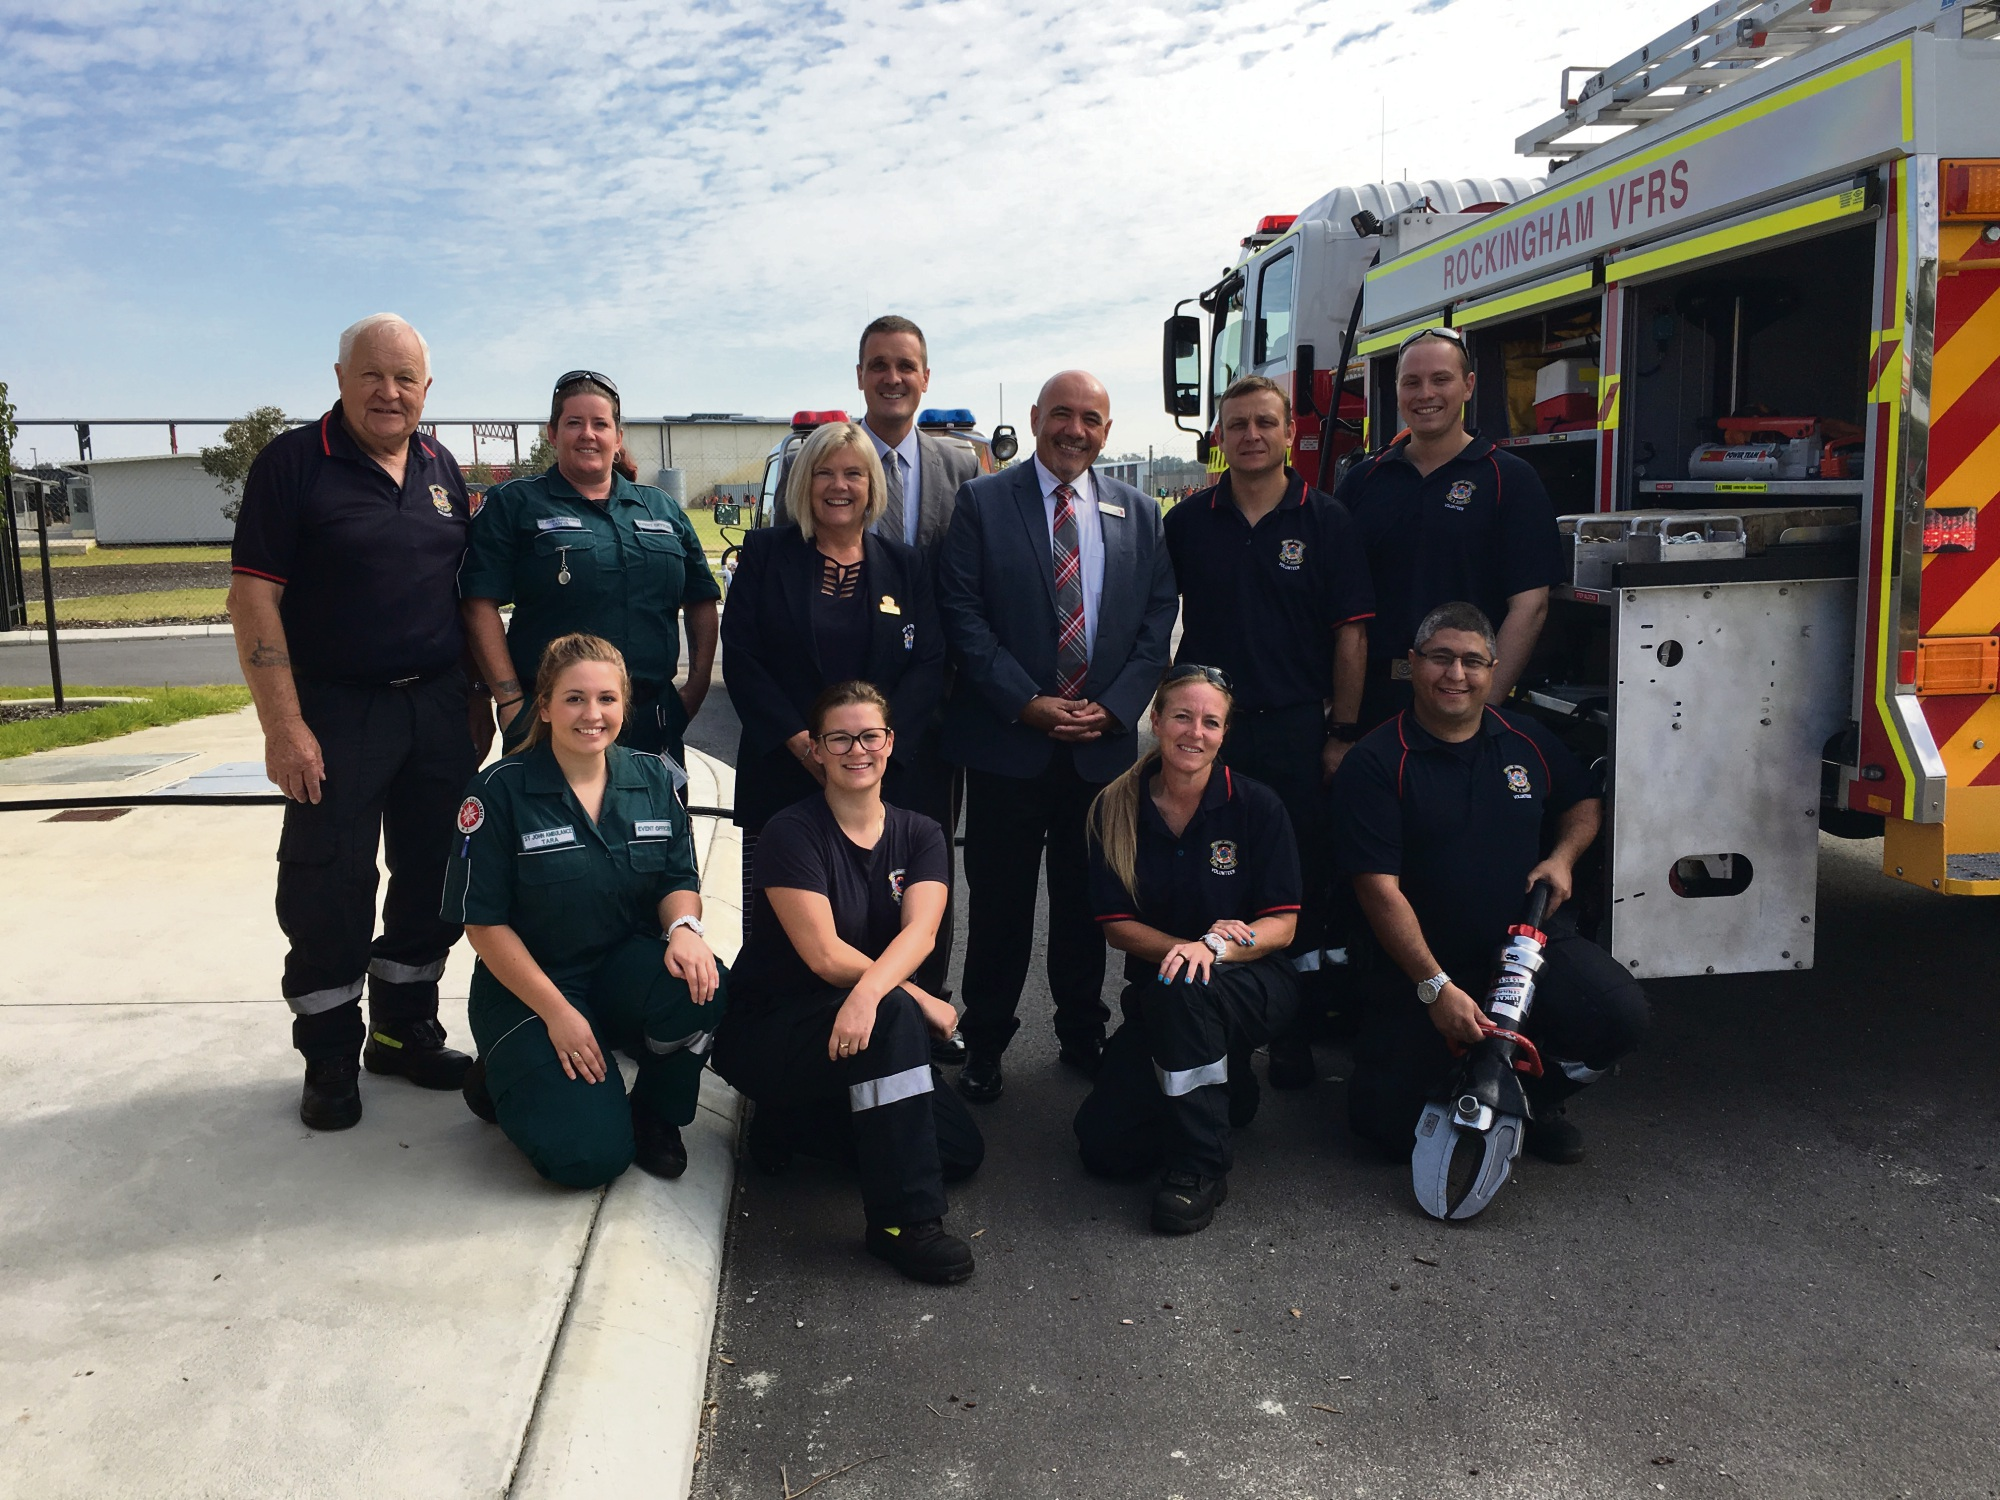 Deputy Mayor Deb Hamblin, Councillor Matthew Whitfield and Rivergums Primary School Principal Josh Jashari (centre) with officers from St John Ambulance and Rockingham Volunteer Fire and Rescue Service at the City's Blessing of the Roads Ceremony.